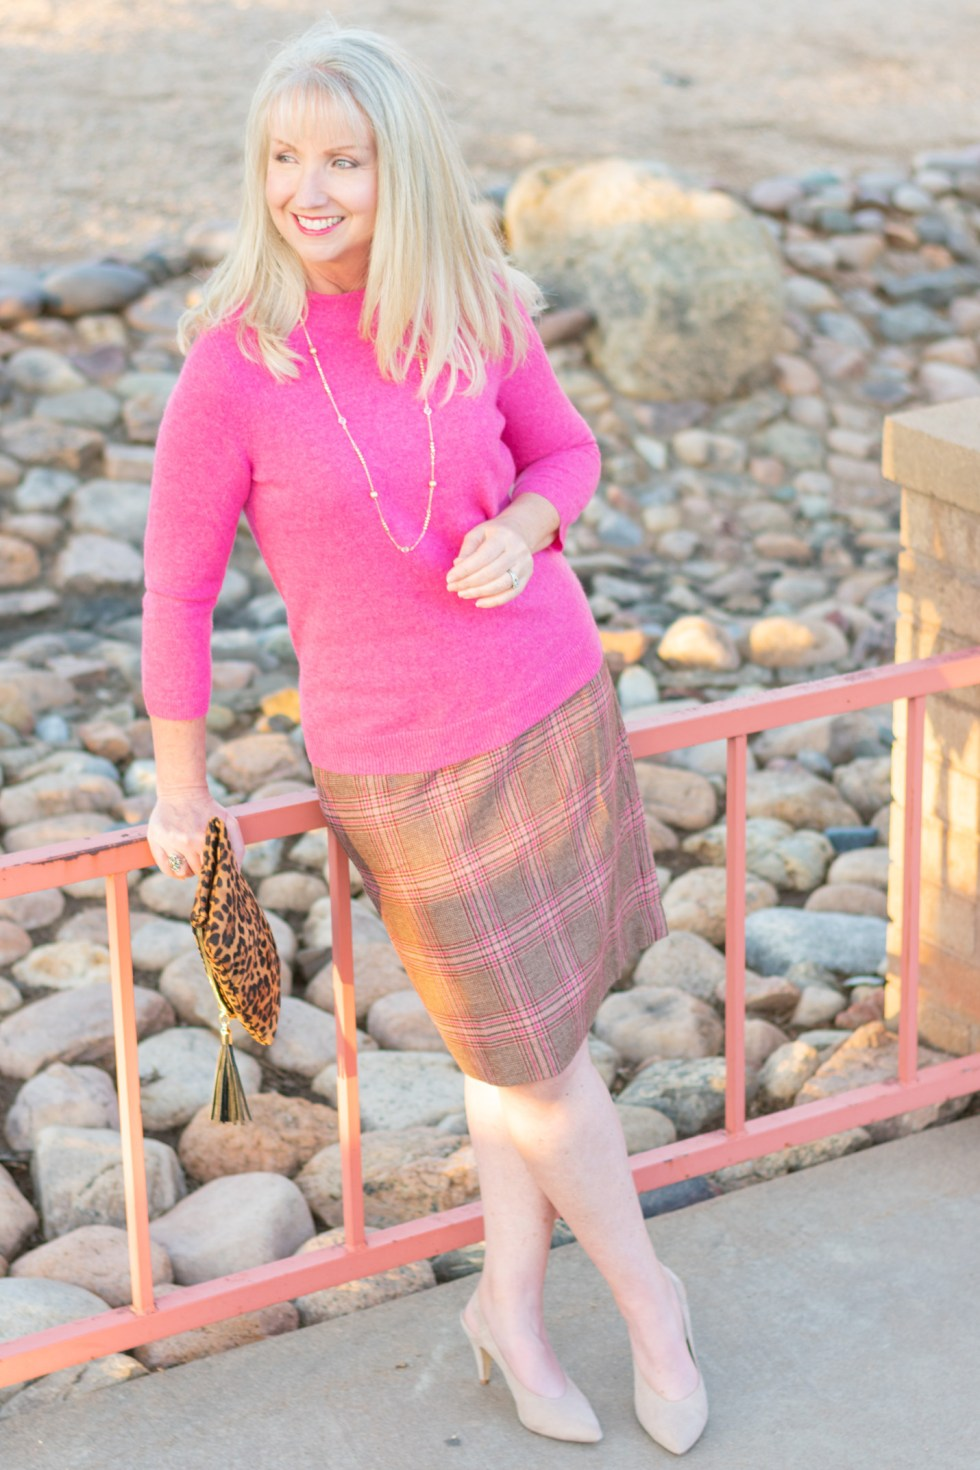 Skirt and Cashmere Sweater in Soft Shades of Fall